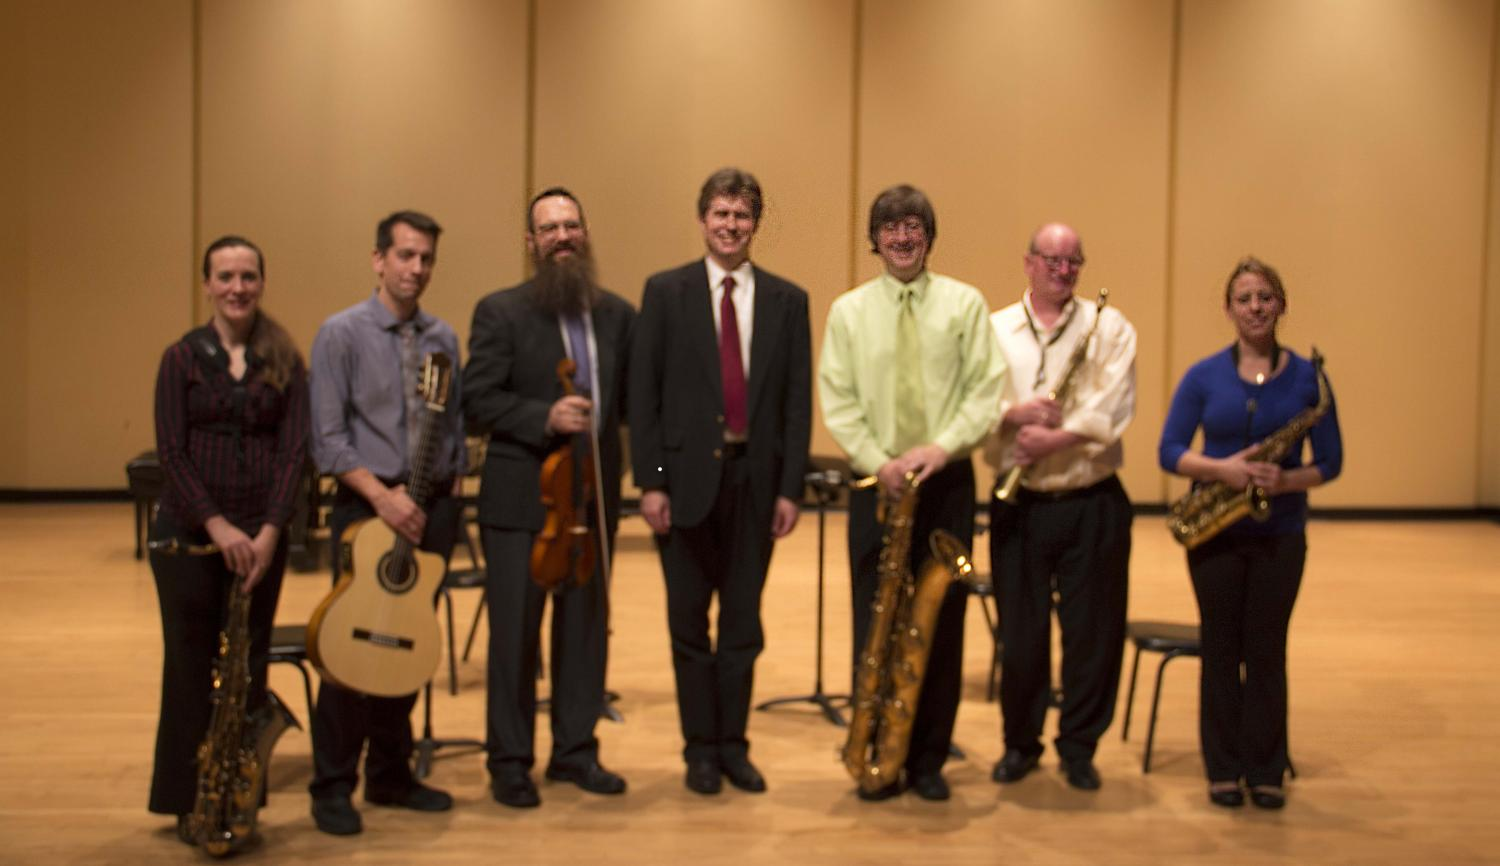 From left to right: Music faculty members Rebecca Wunch, Jonathan Nolan, Jonathan Moser, Nathan Hess, D.M.A., Scott Meier, Ph.D., Allan Zürcher and Bethany Dressler all performed at the recital.